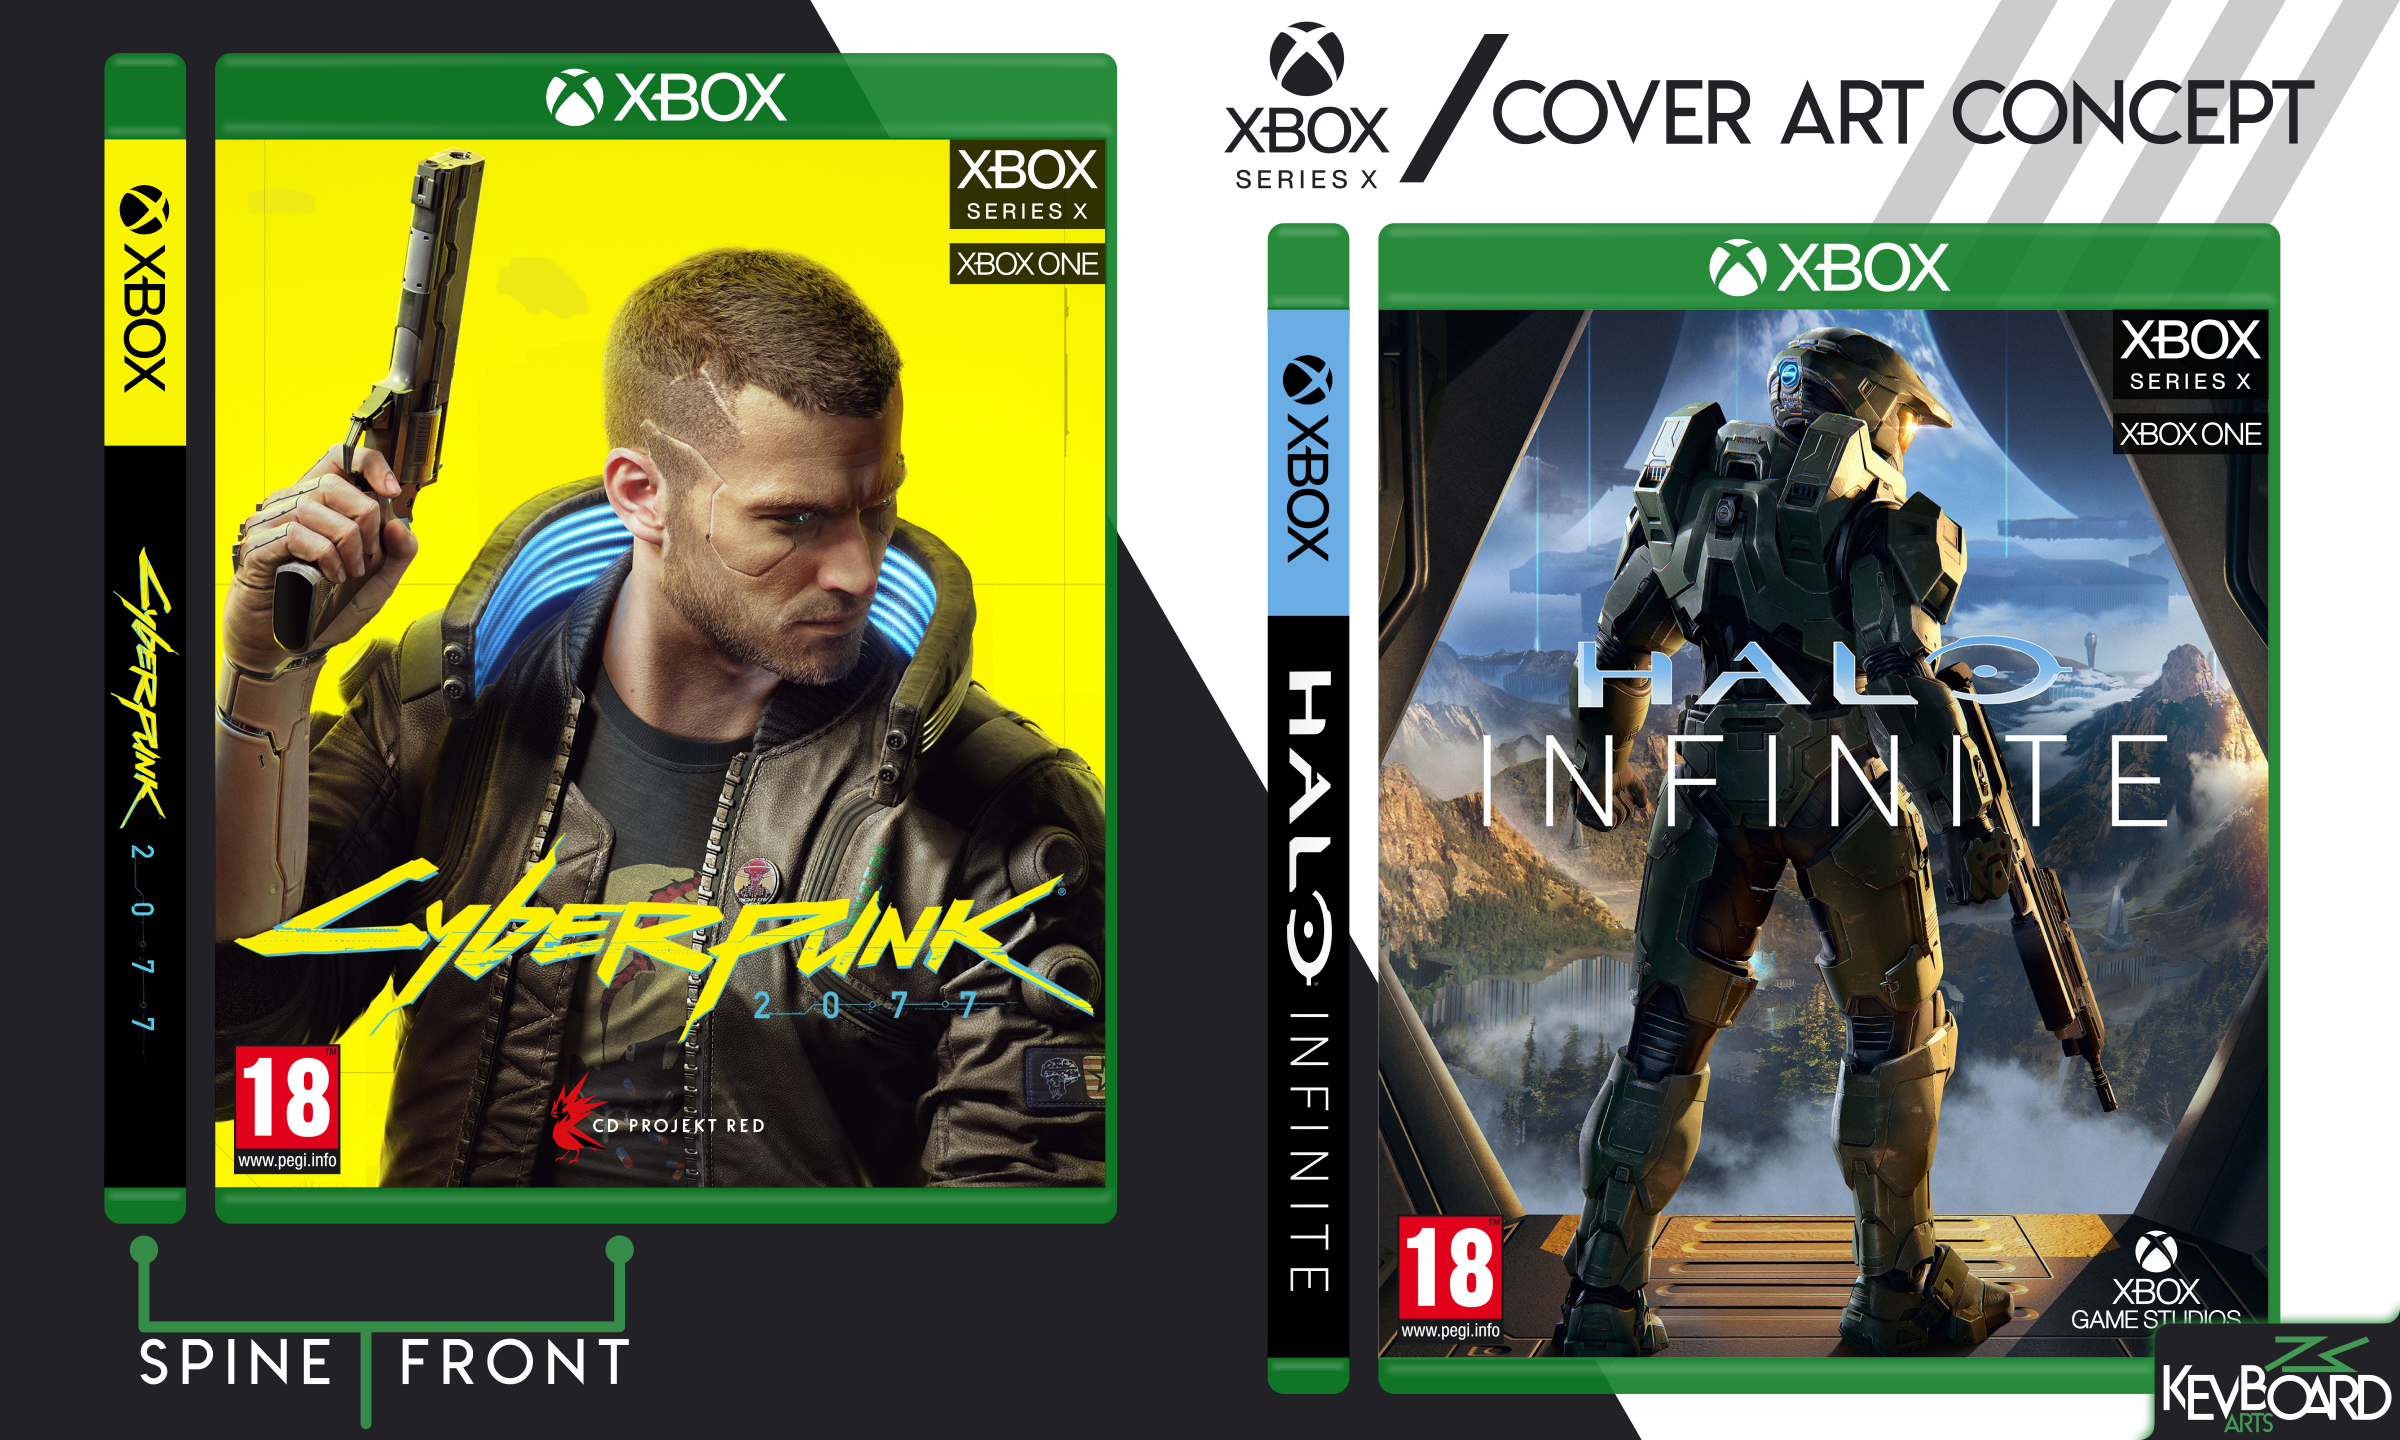 Xbox Series X Cover Design Concept By Kevboard On Deviantart